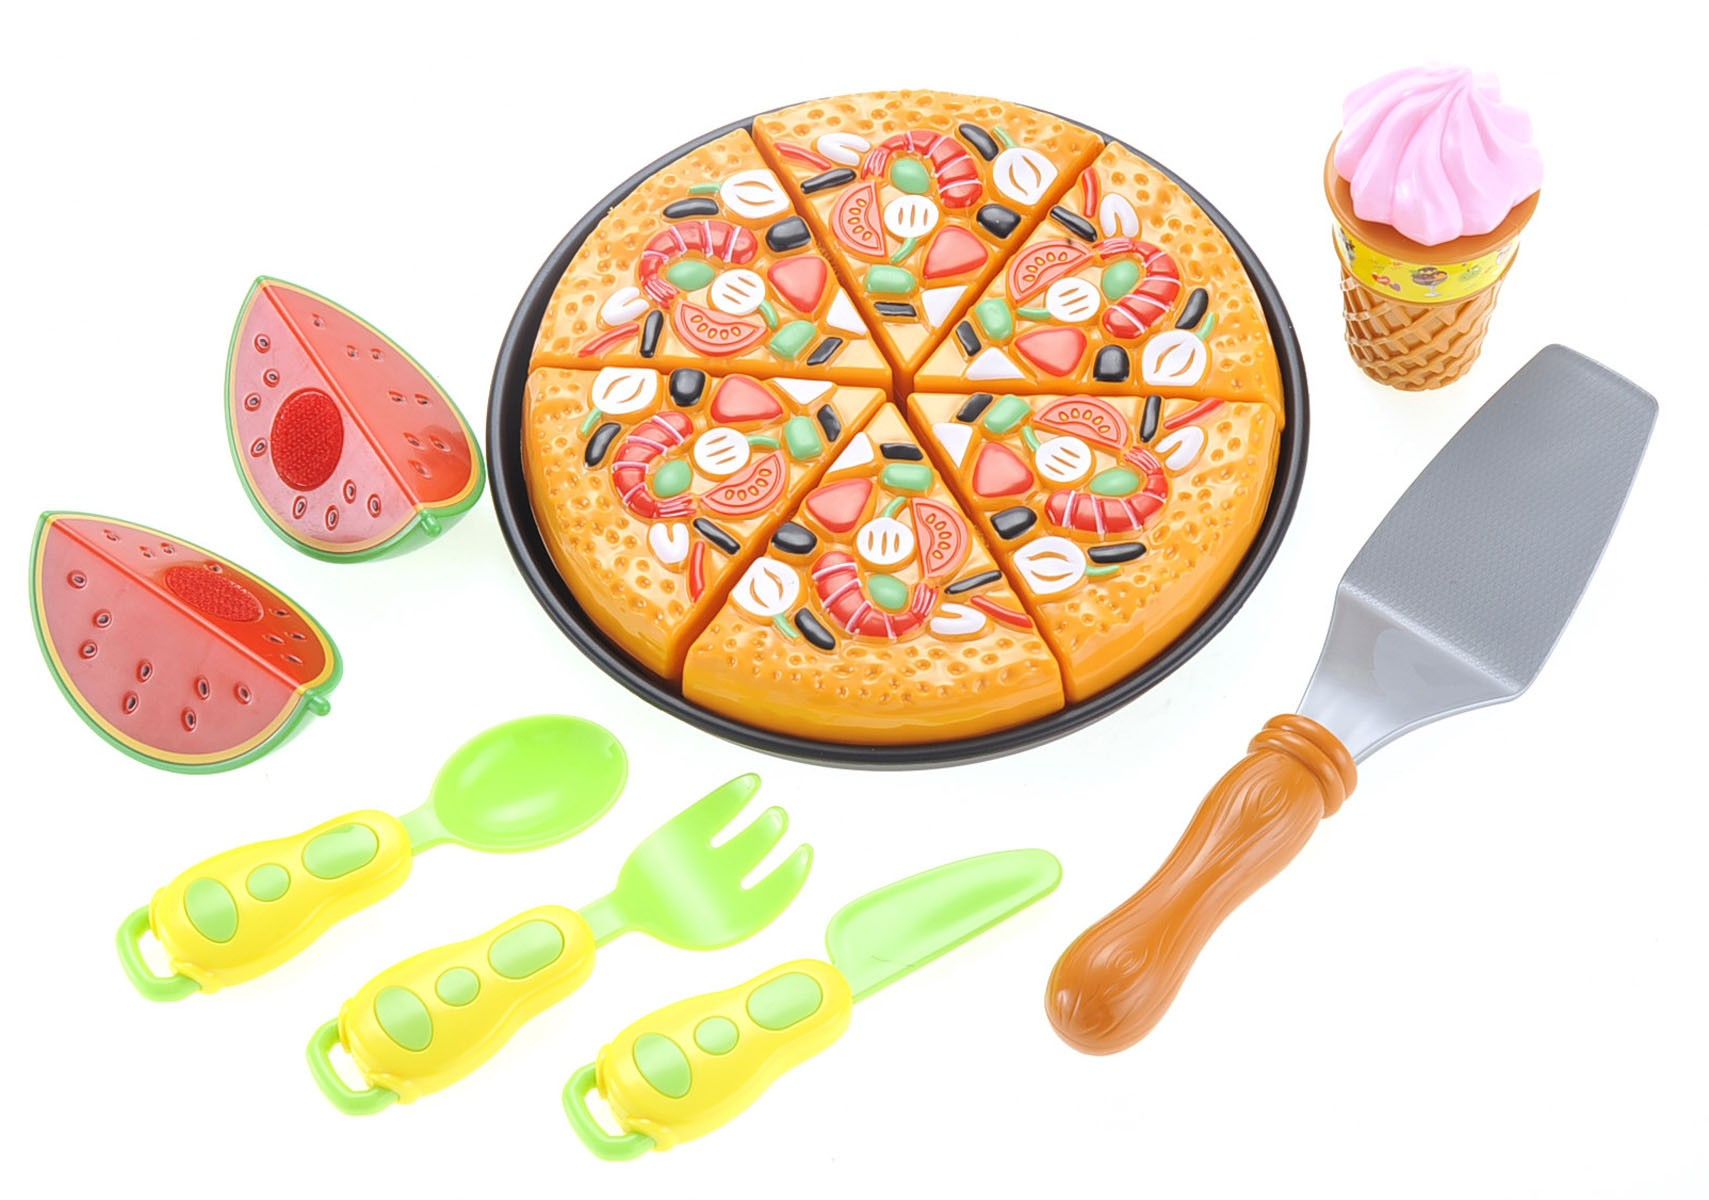 Pizza Playset With Watermelon, Icecream And Utensils